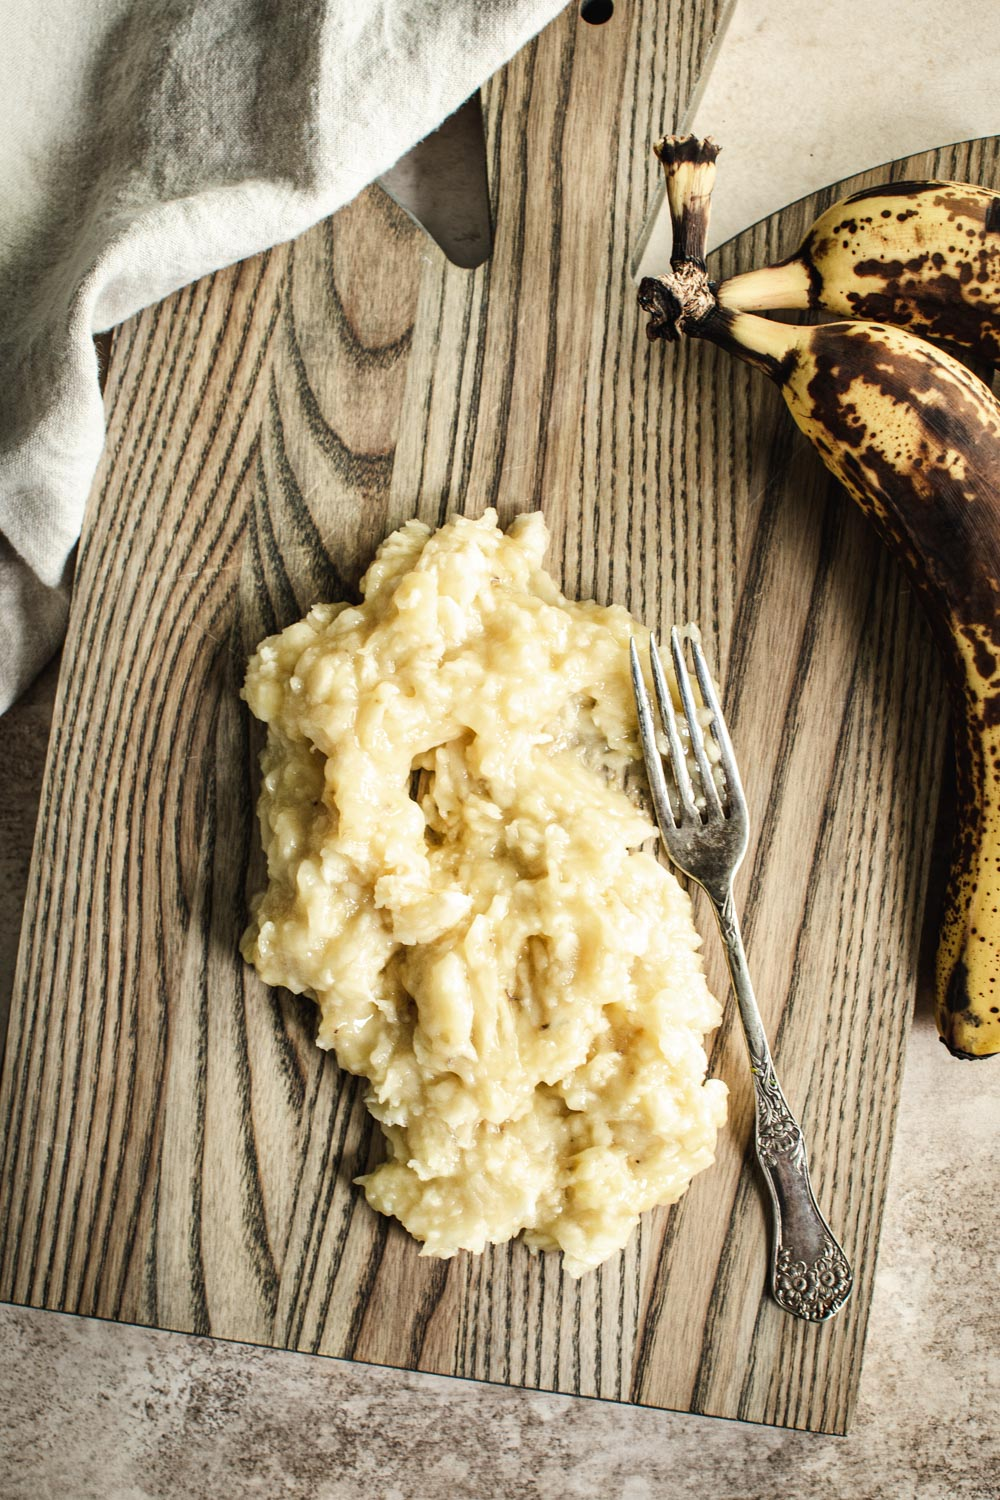 Mashed bananas on a wooden cutting board.